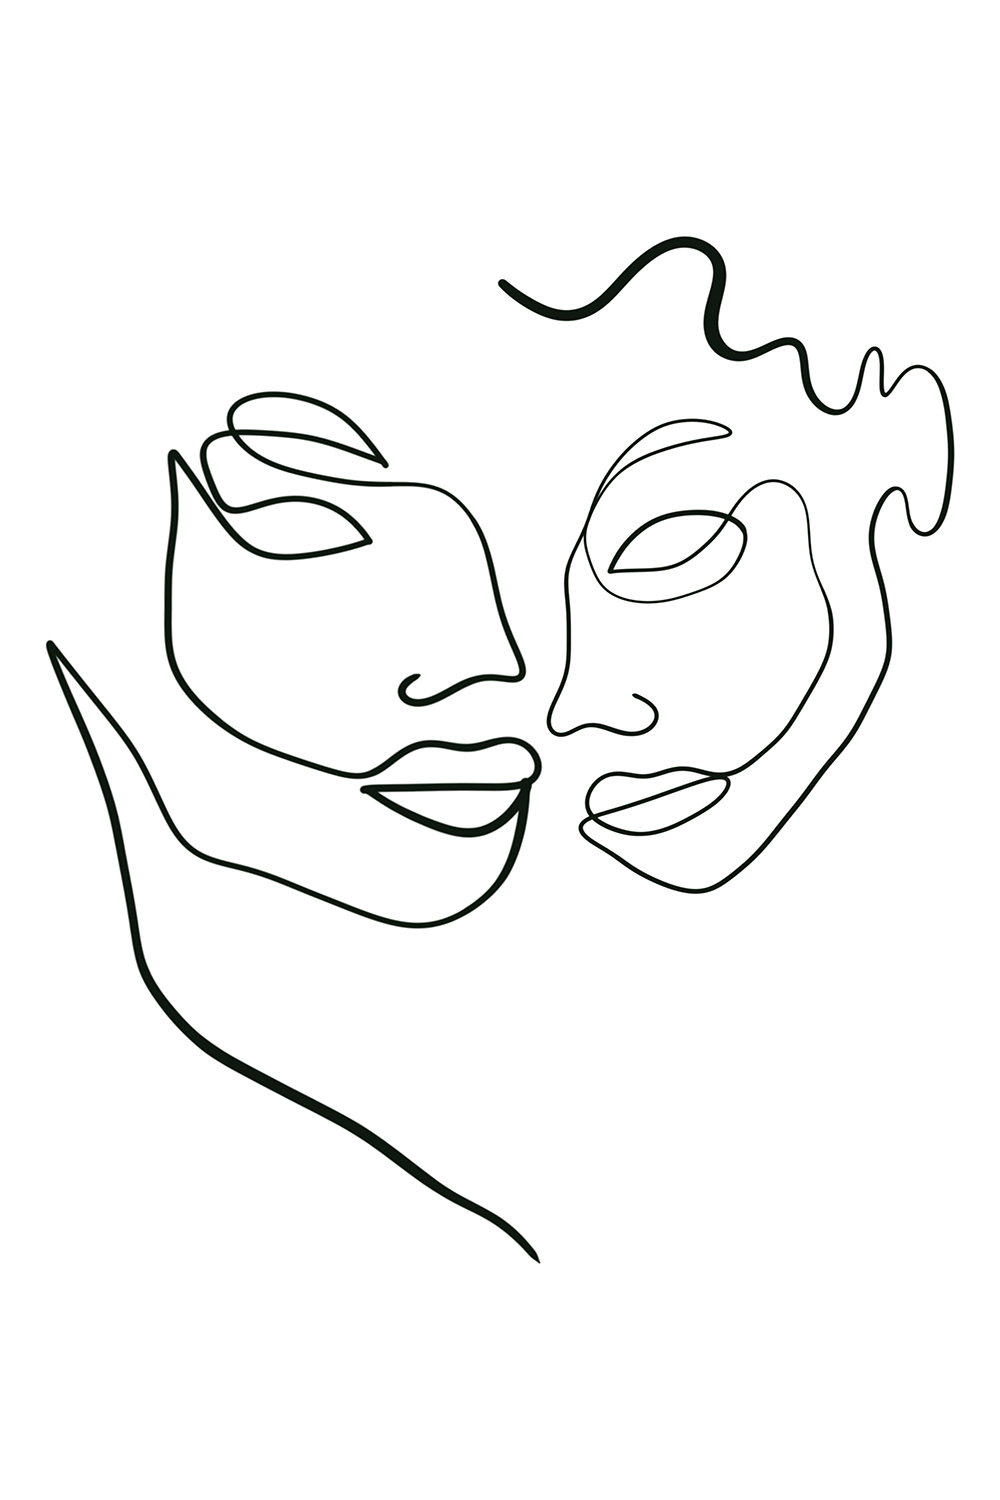 Minimalist line illustration of two faces intertwined